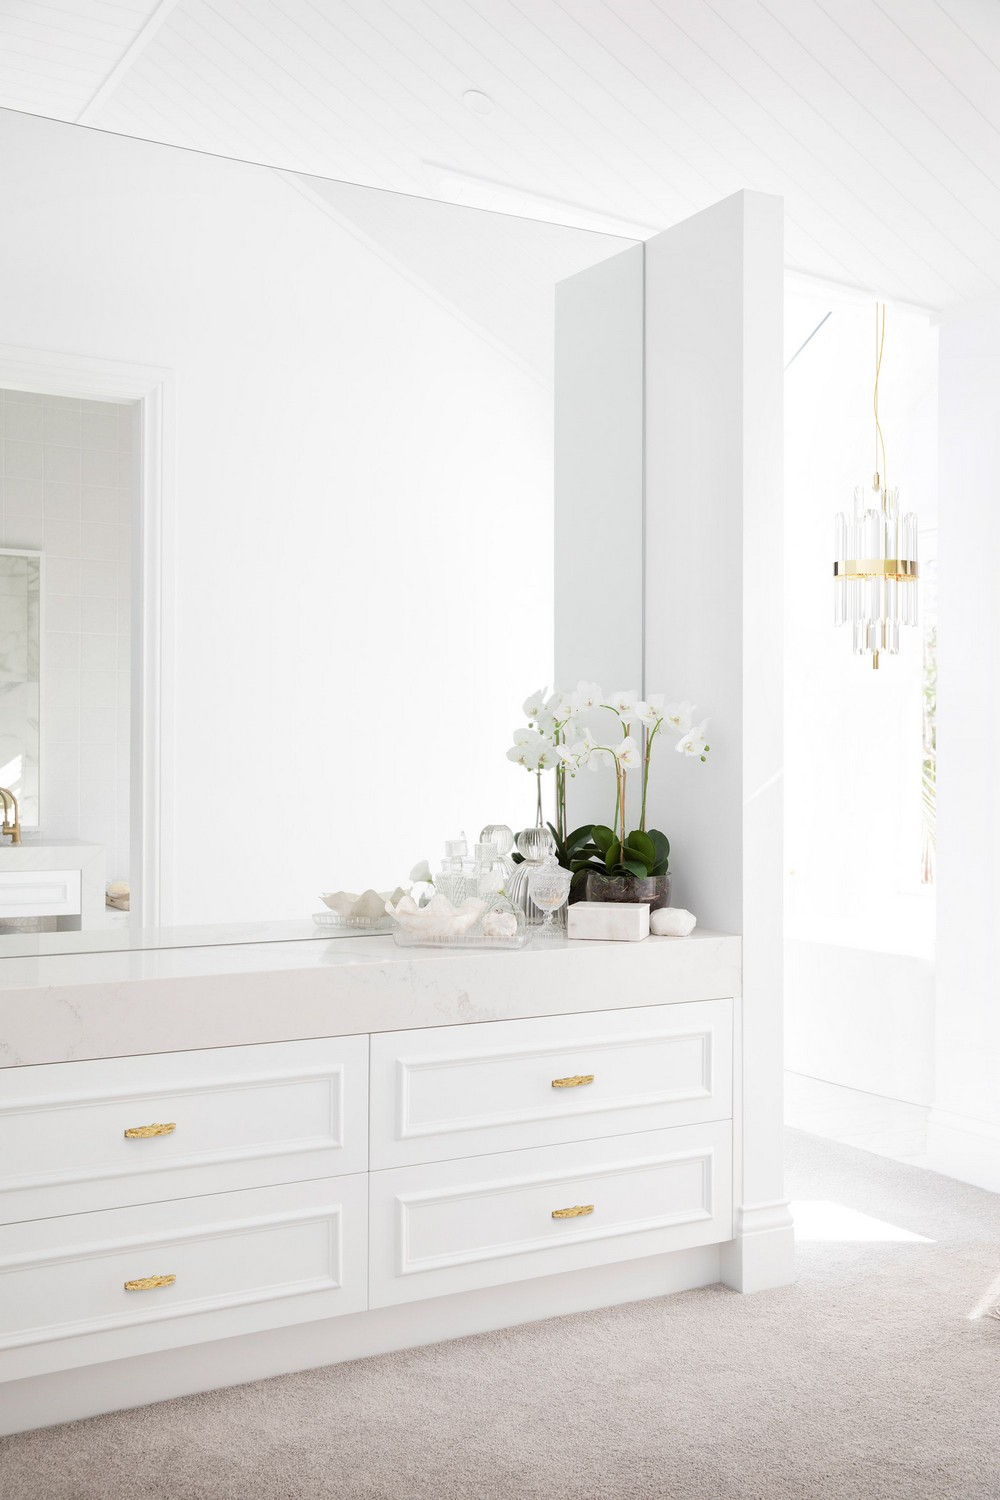 Discover Design & Hardware Inspirations for a Coastal Home Style 14 hardware inspirations Contemplate Design & Hardware Inspirations for a Coastal Home Style Discover Design Hardware Inspirations for a Coastal Home Style 14